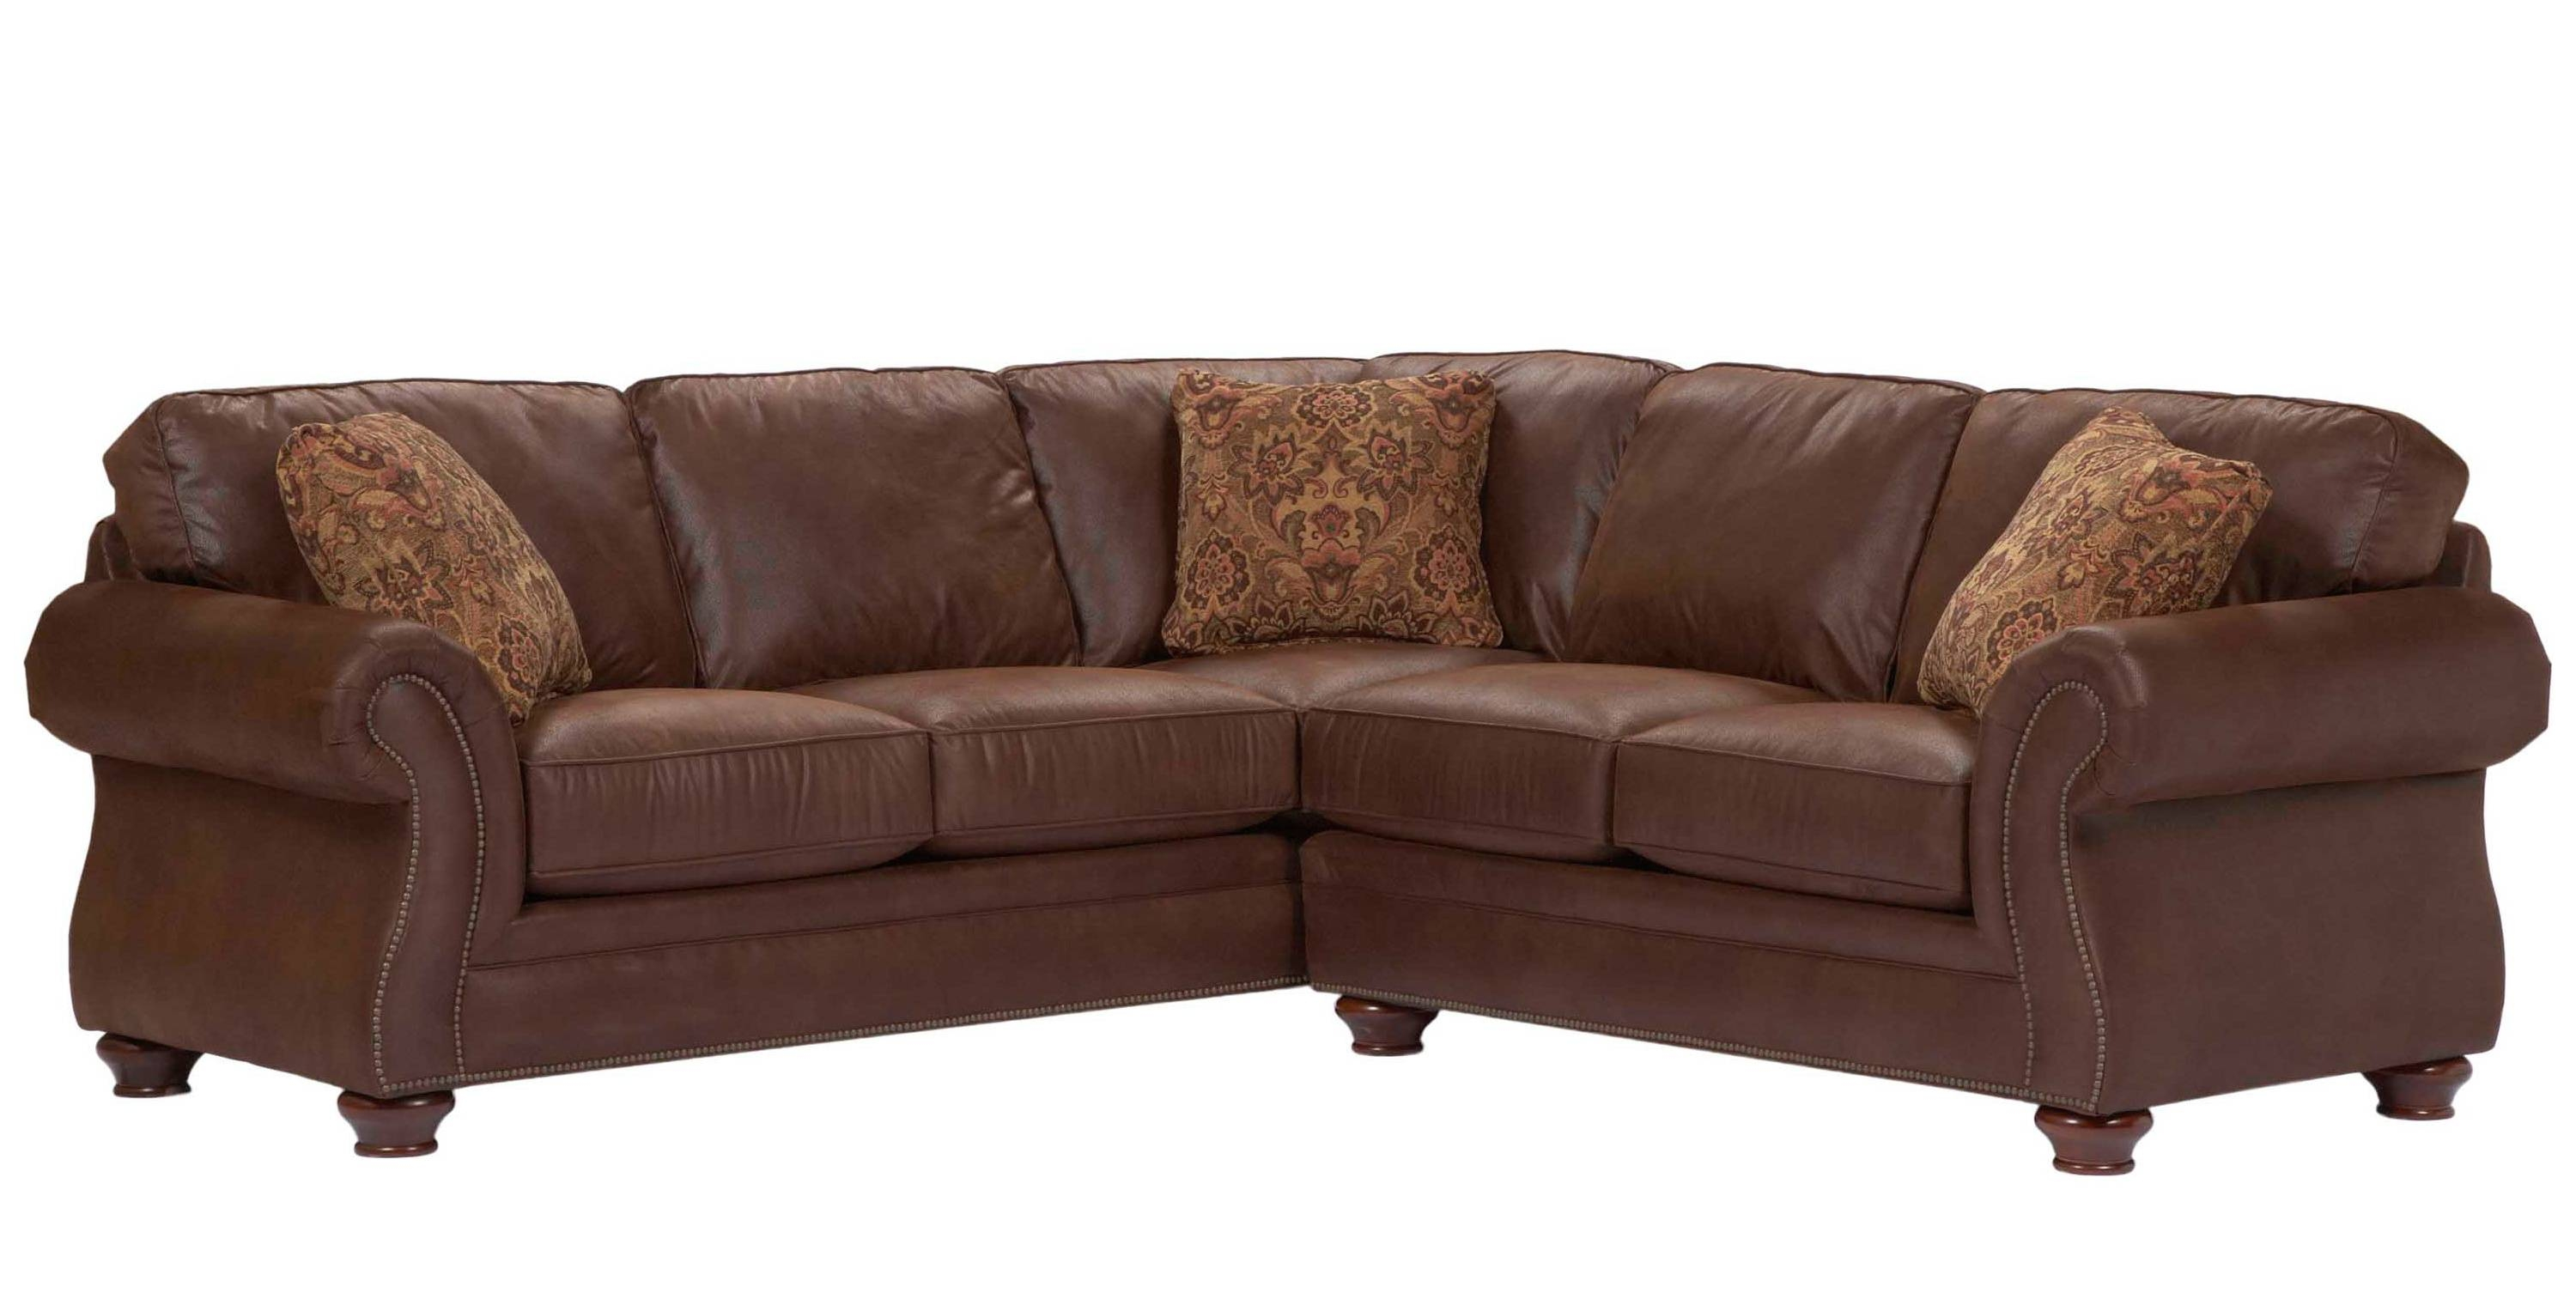 Broyhill Laramie Sectional 5080-1Q/5080-4Q pertaining to Broyhill Sectional Sofas (Image 16 of 30)